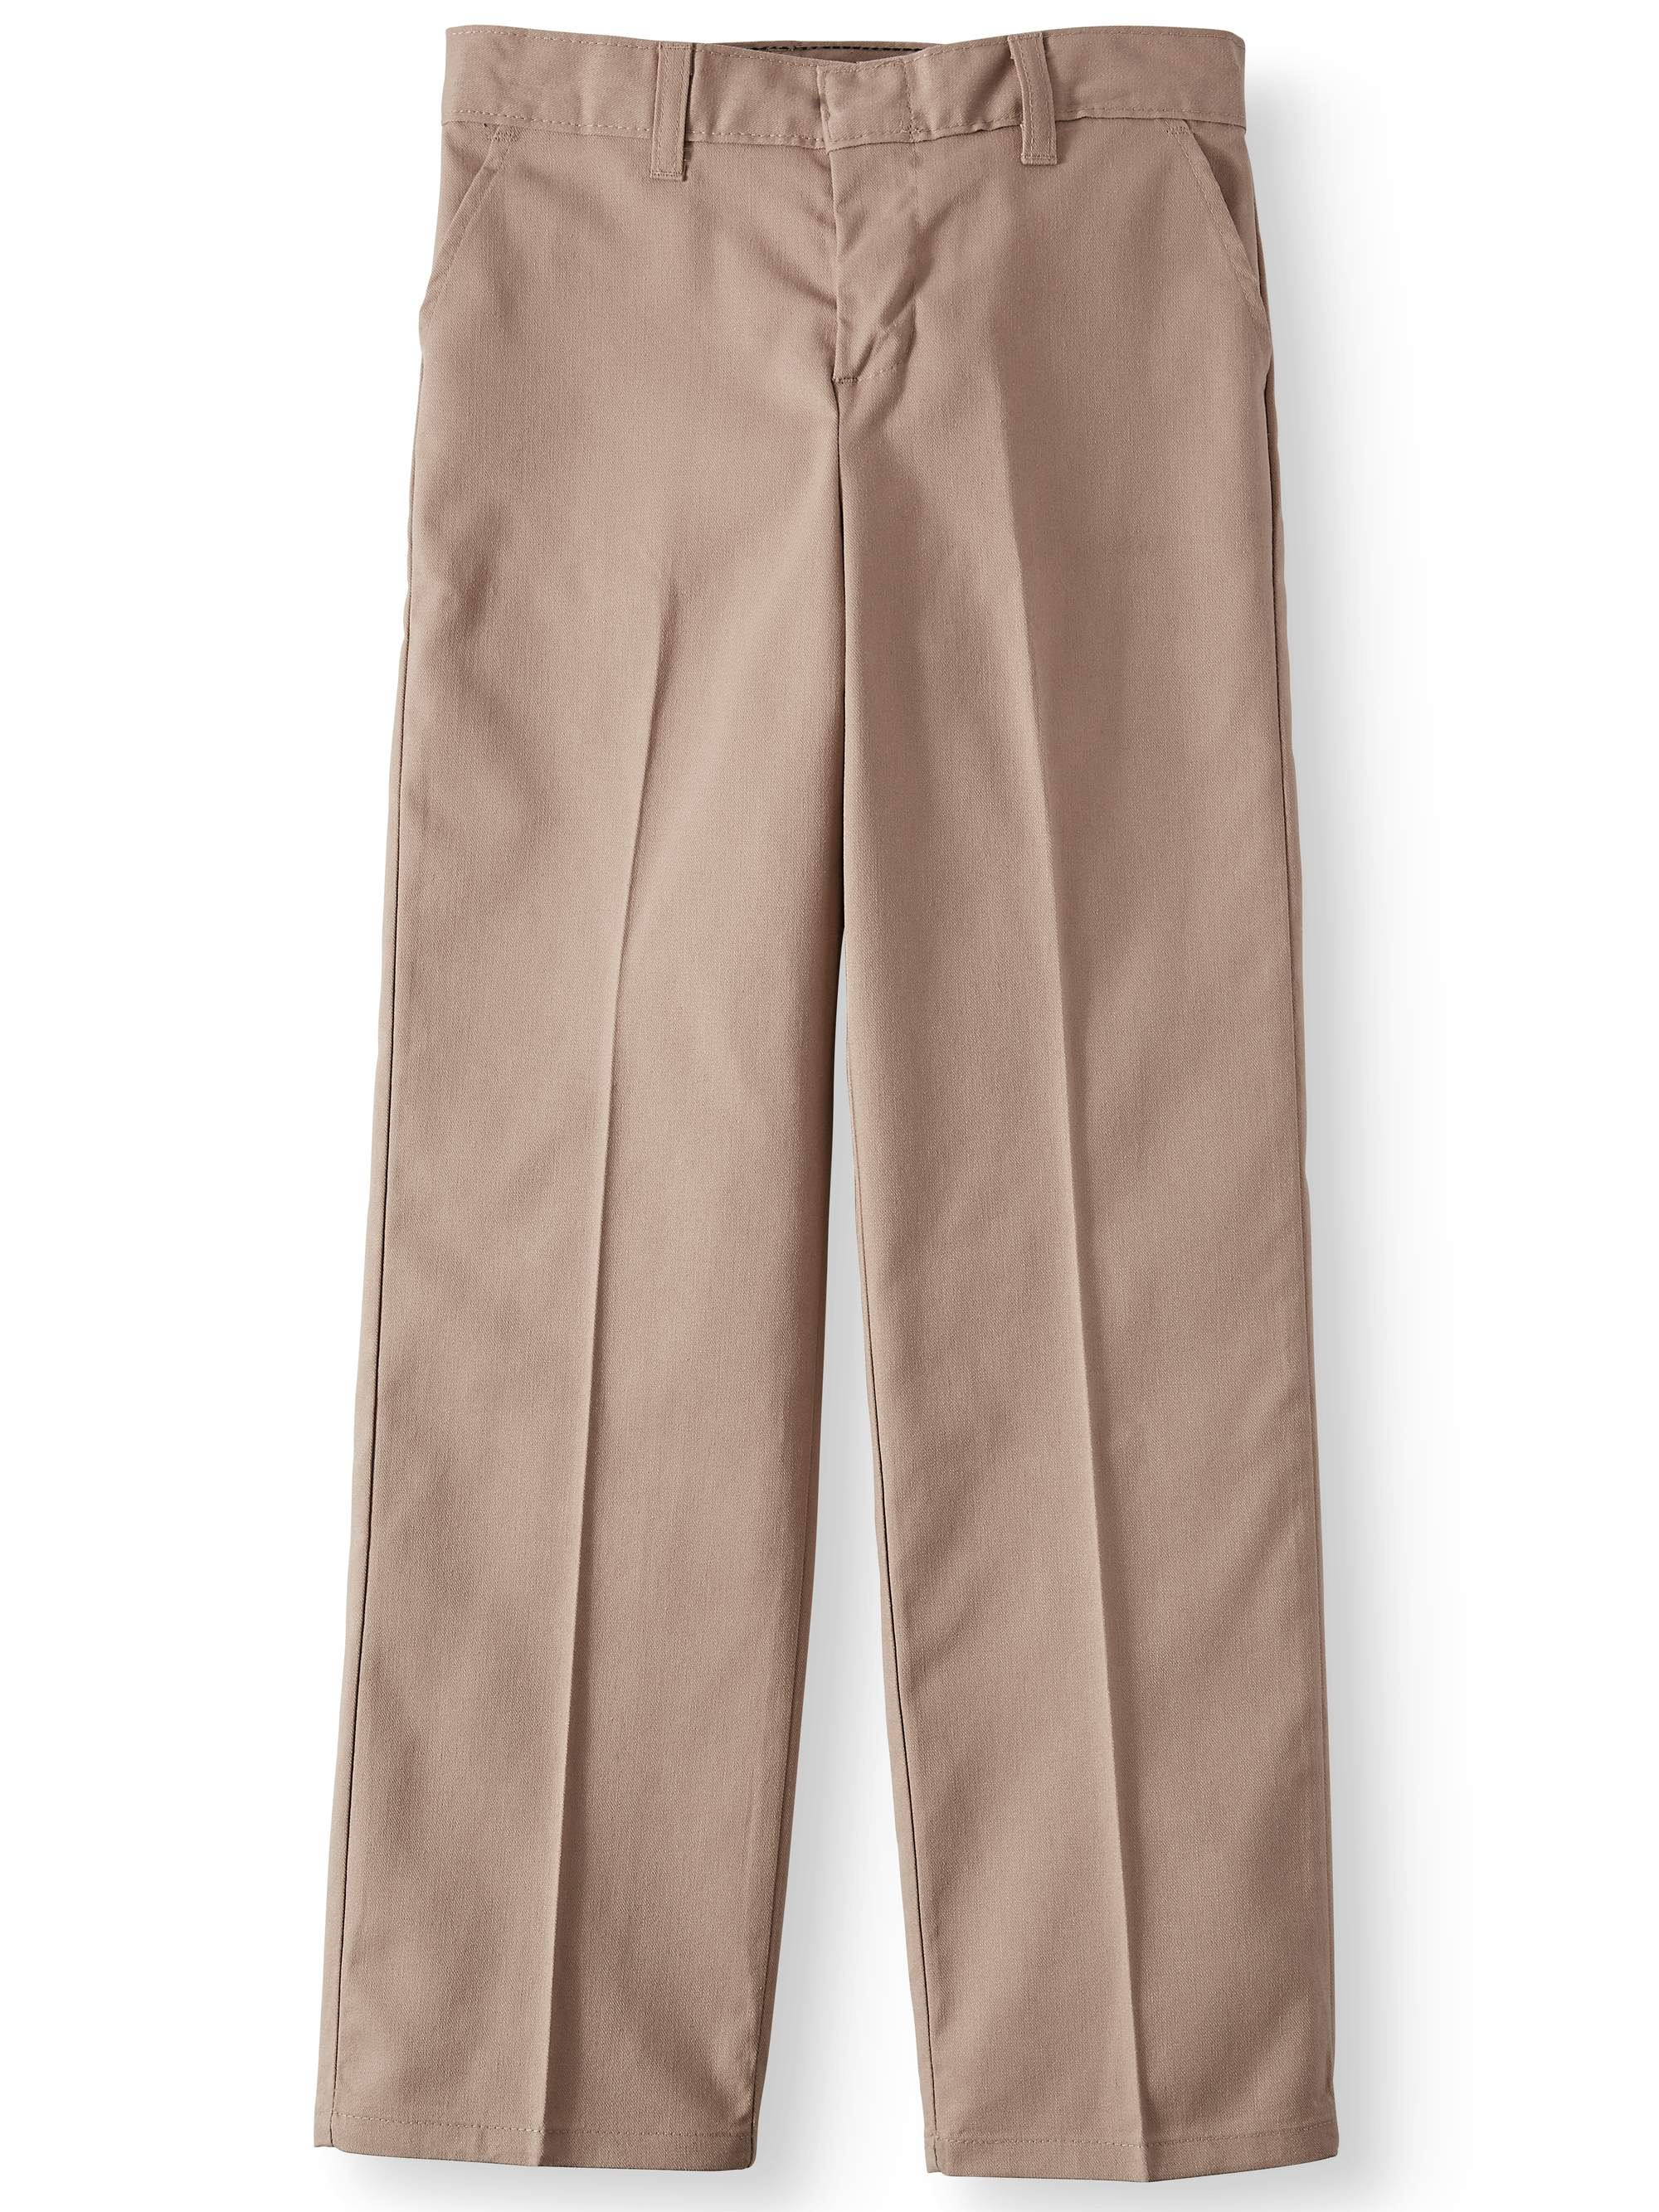 Girls' Traditional Flat Front School Uniform Style Pants